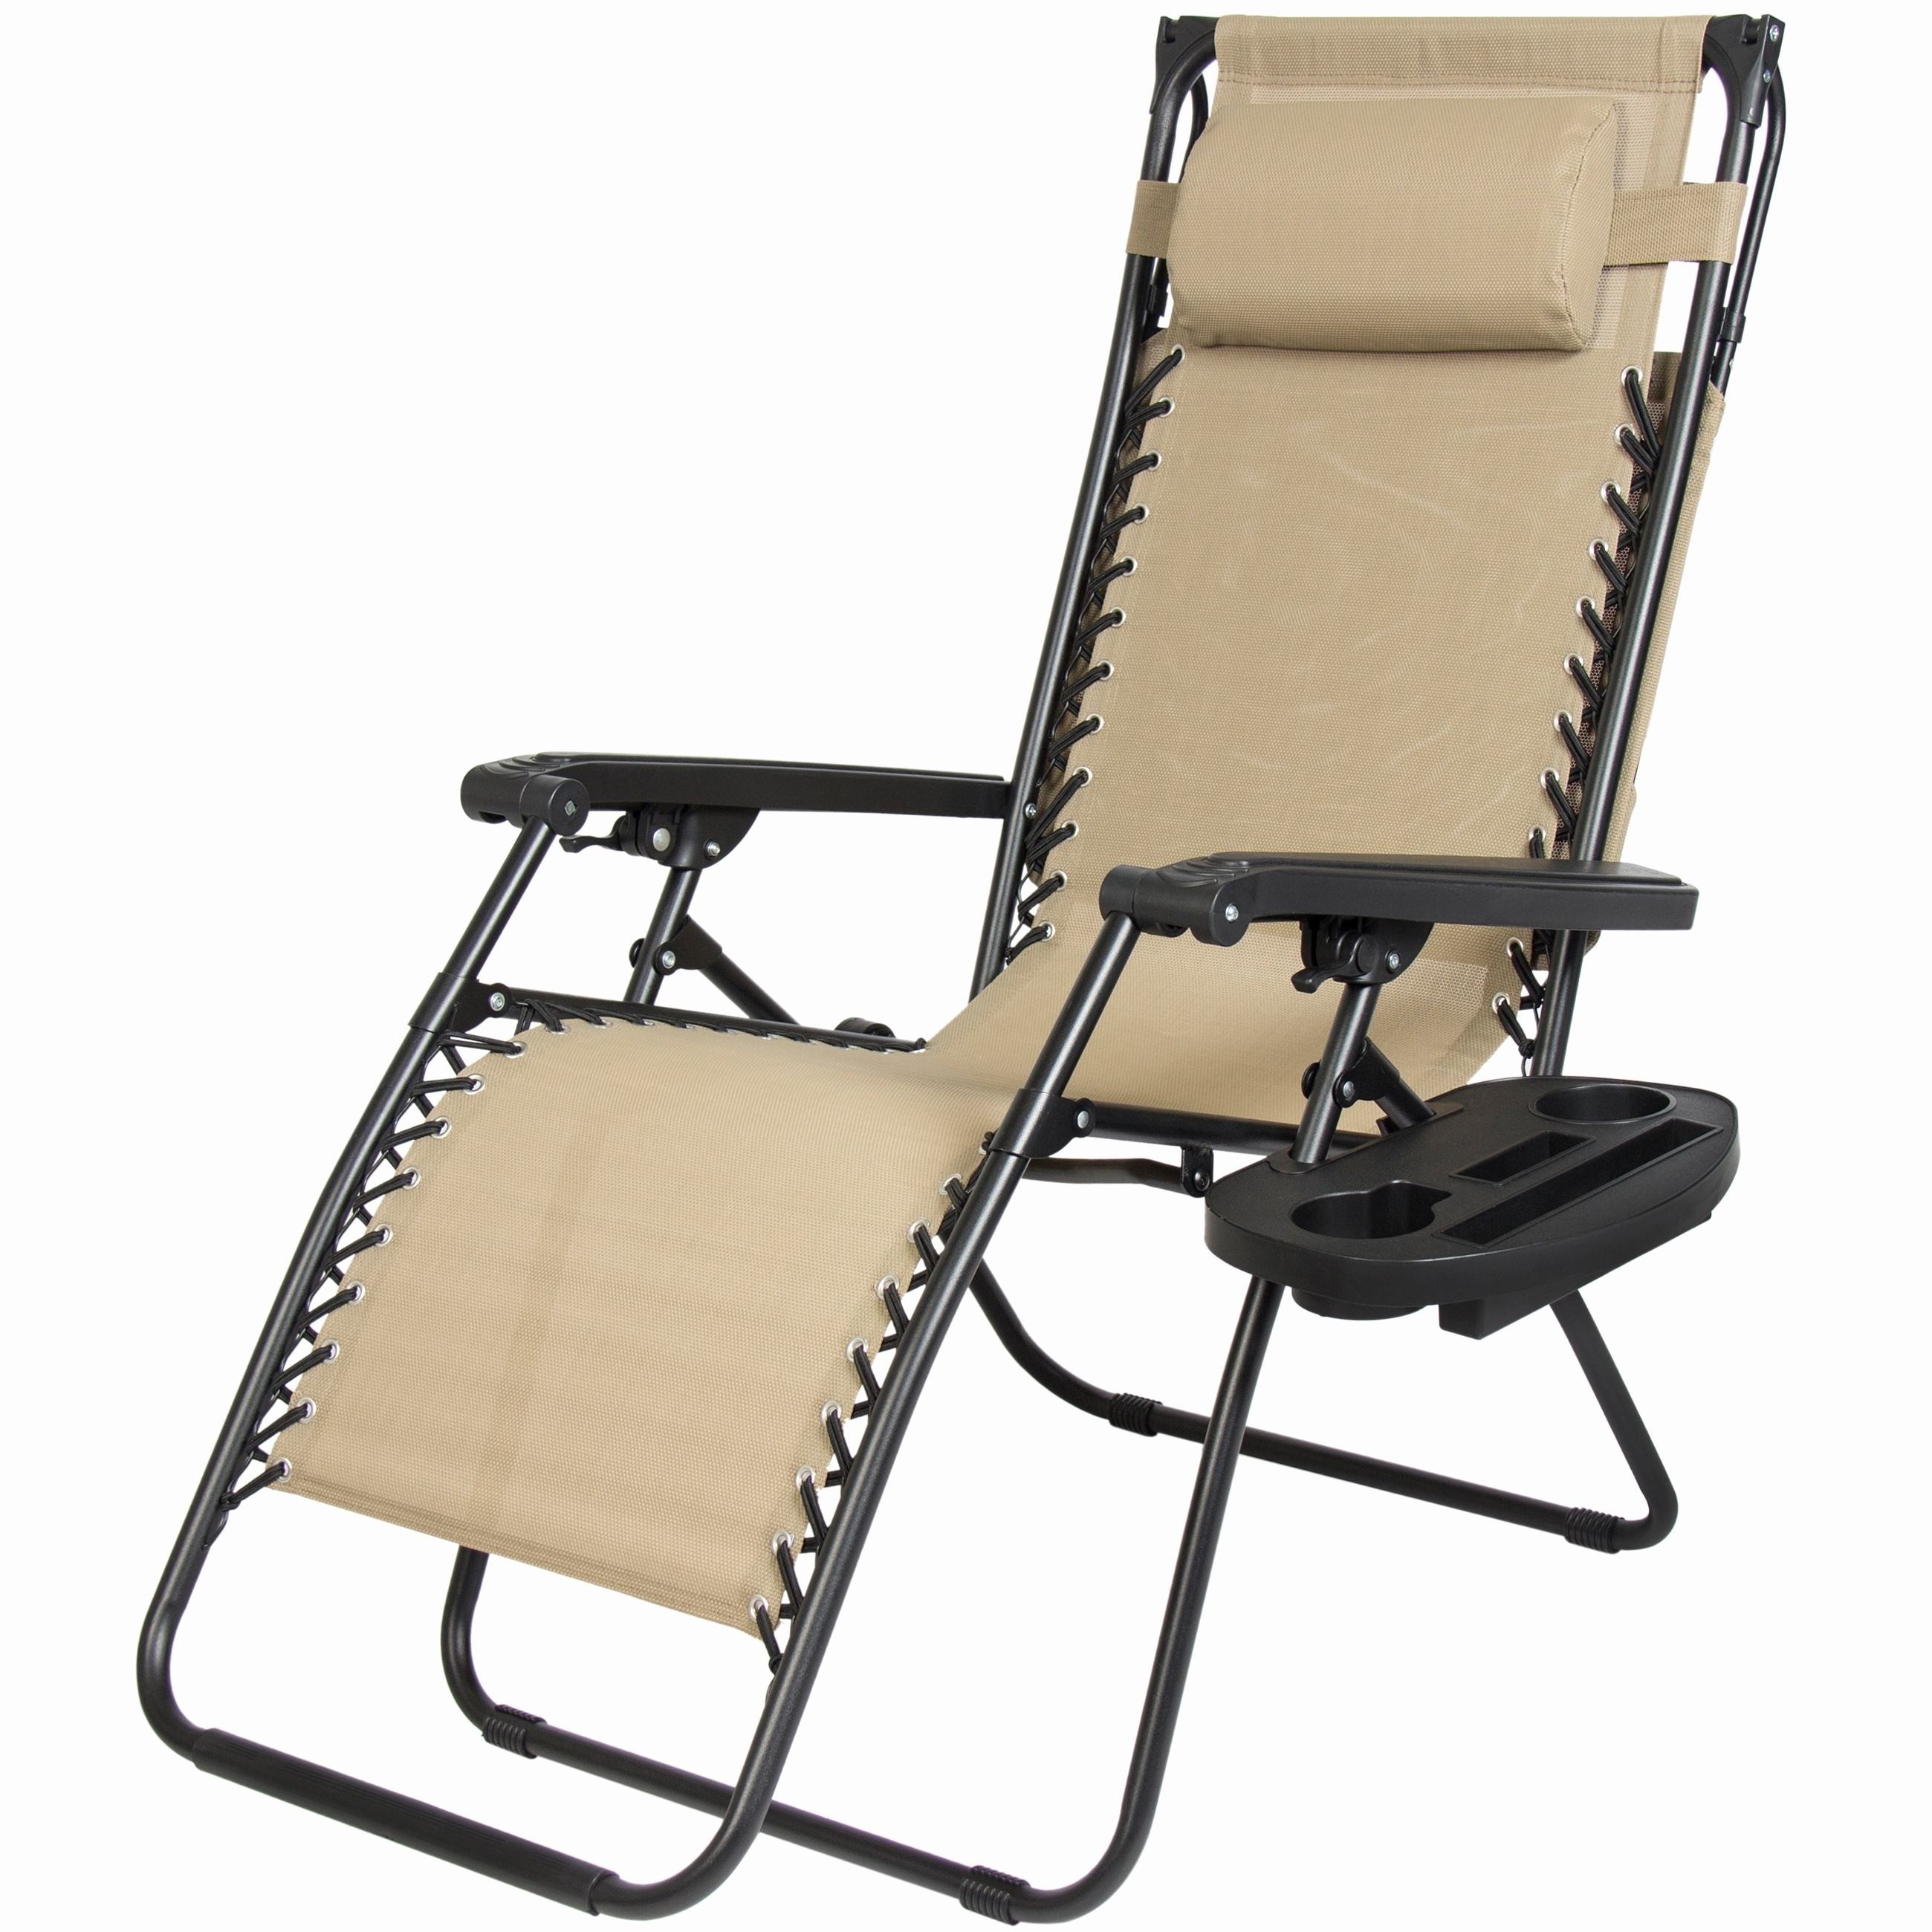 patio lounge chairs target baby vibrating chair argos chaise outdoor ideas